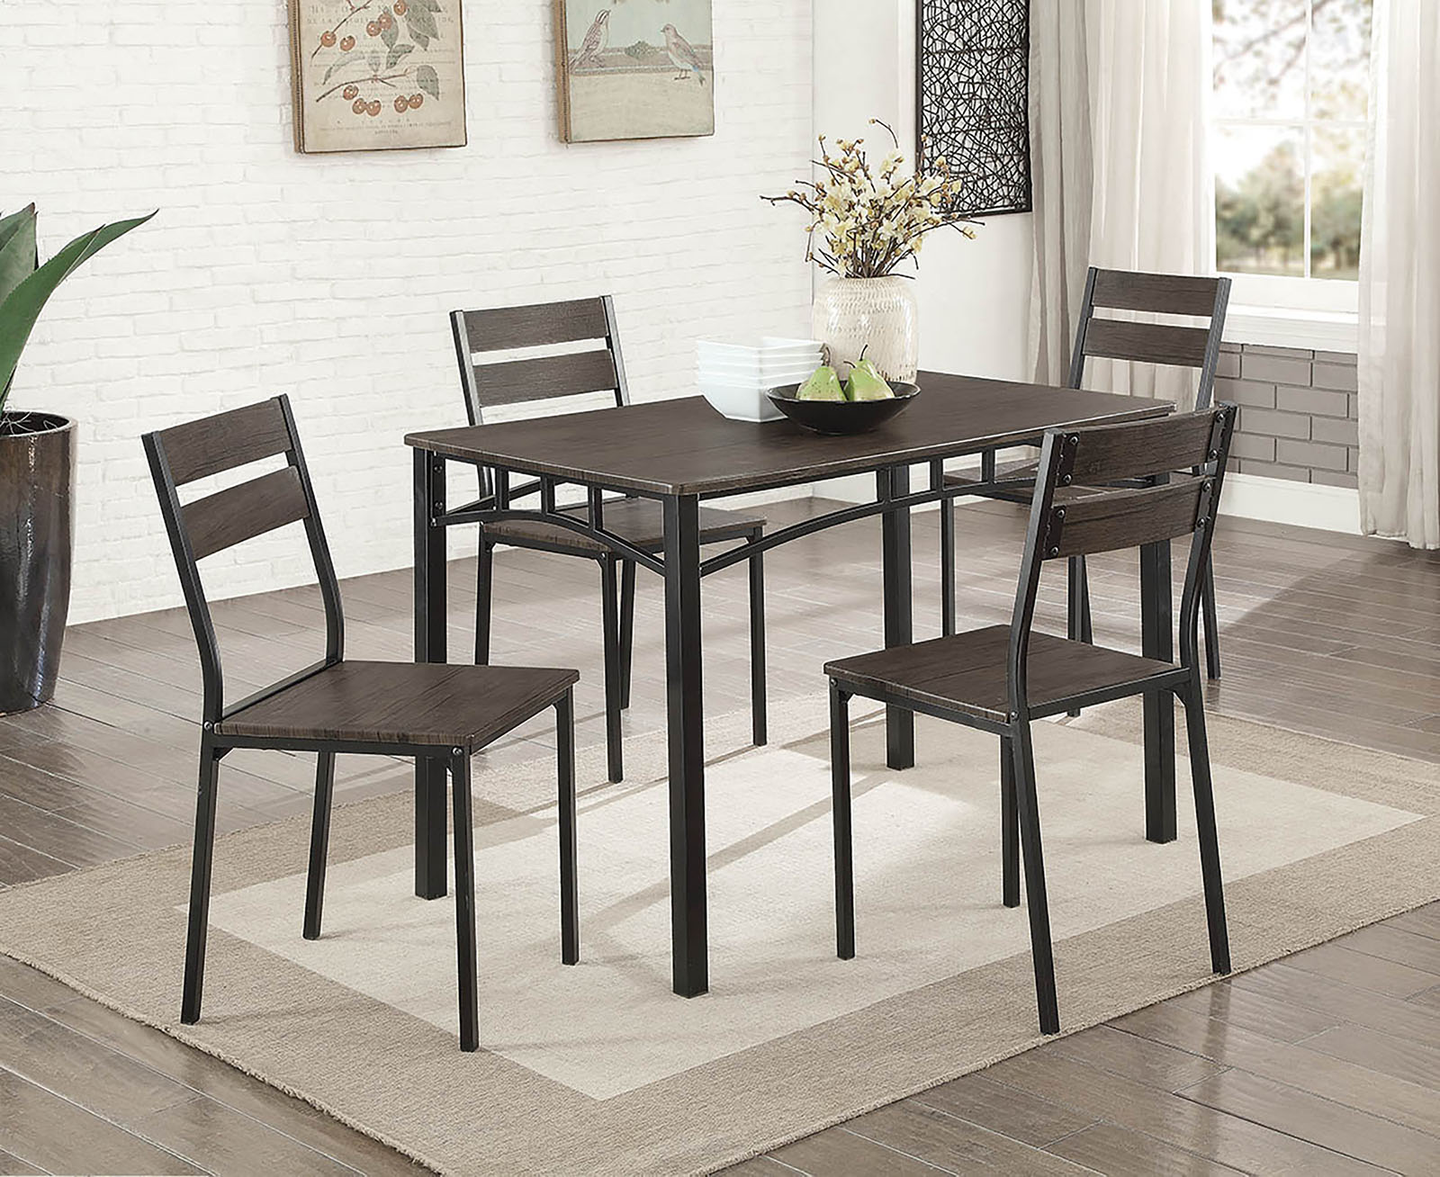 Westport Wooden 5PC Dining Set